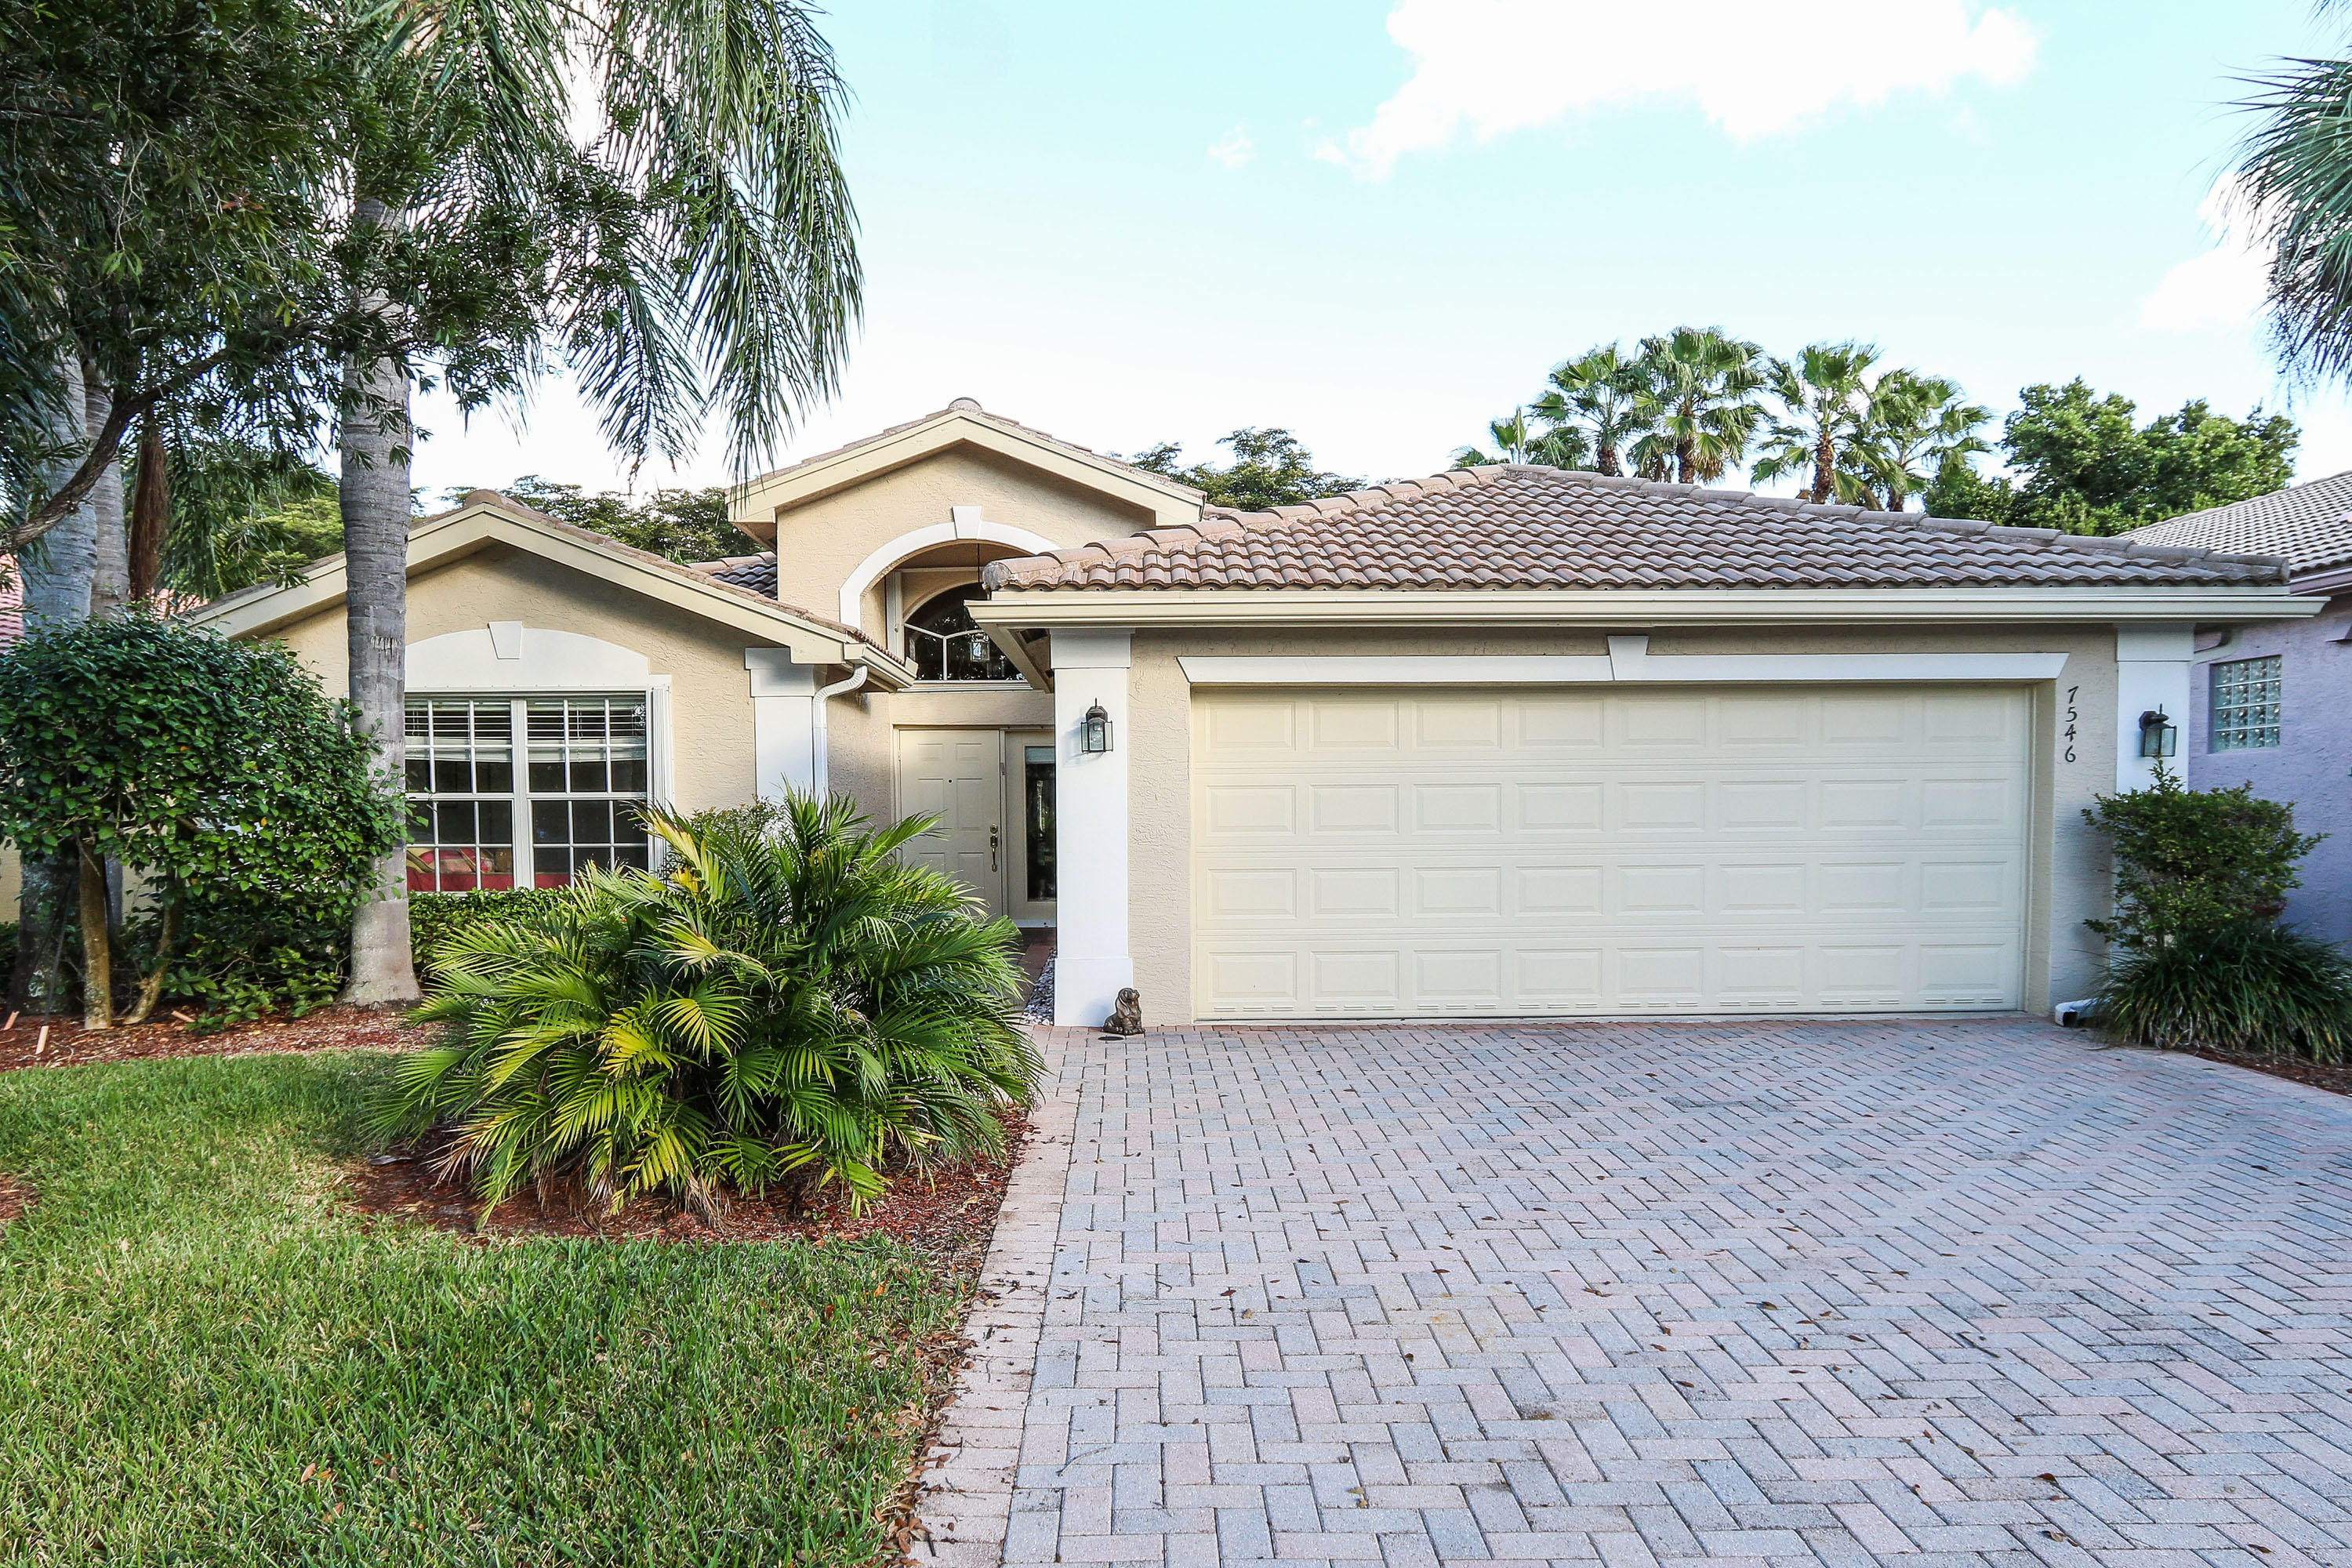 VALENCIA SHORES home 7546 Cape Verde Lane Lake Worth FL 33467